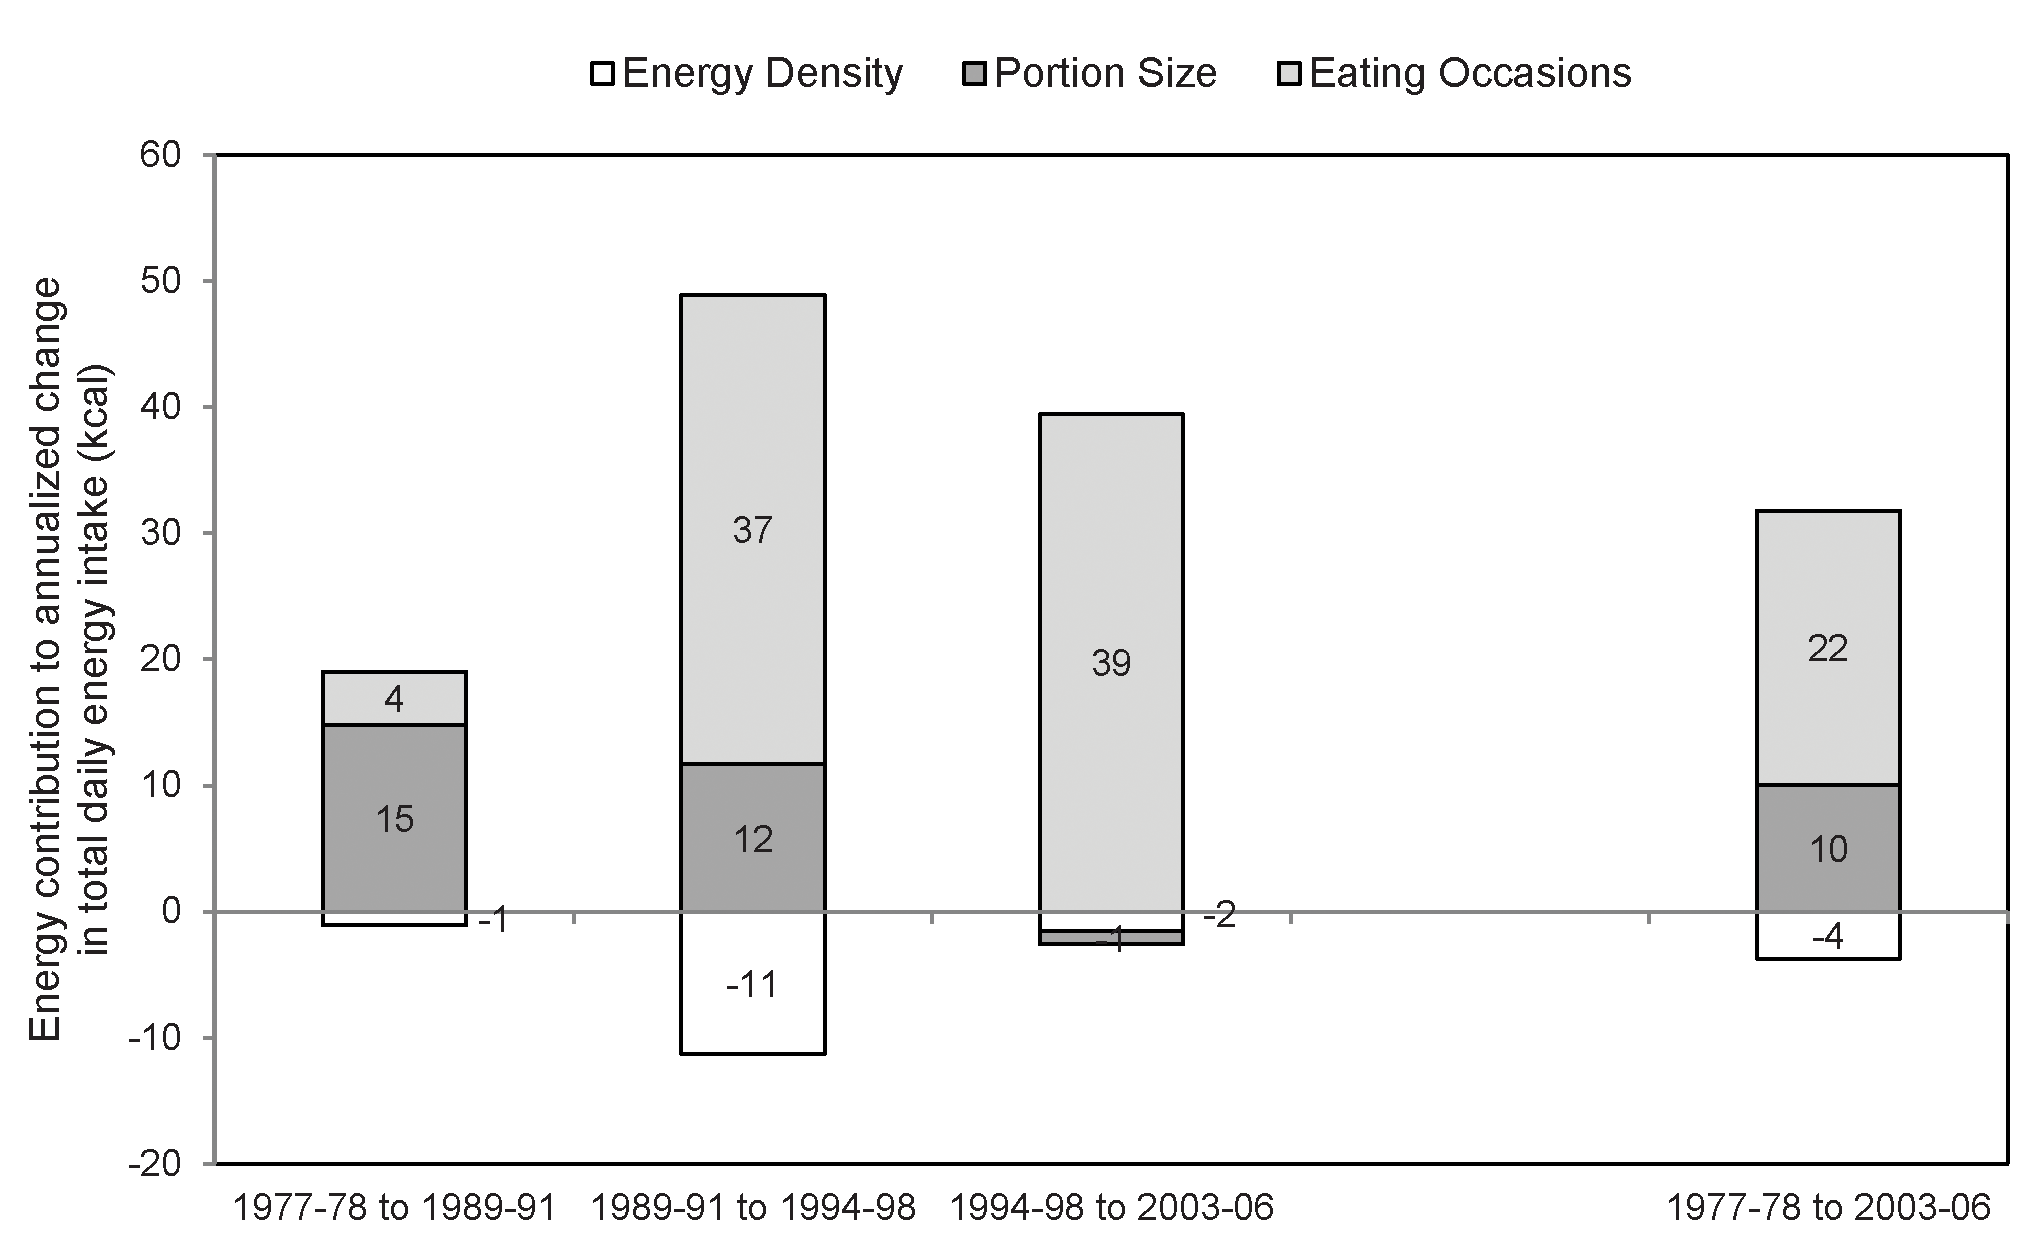 Annualized contribution of portion size, energy density, and eating occasions to total energy intake changes.